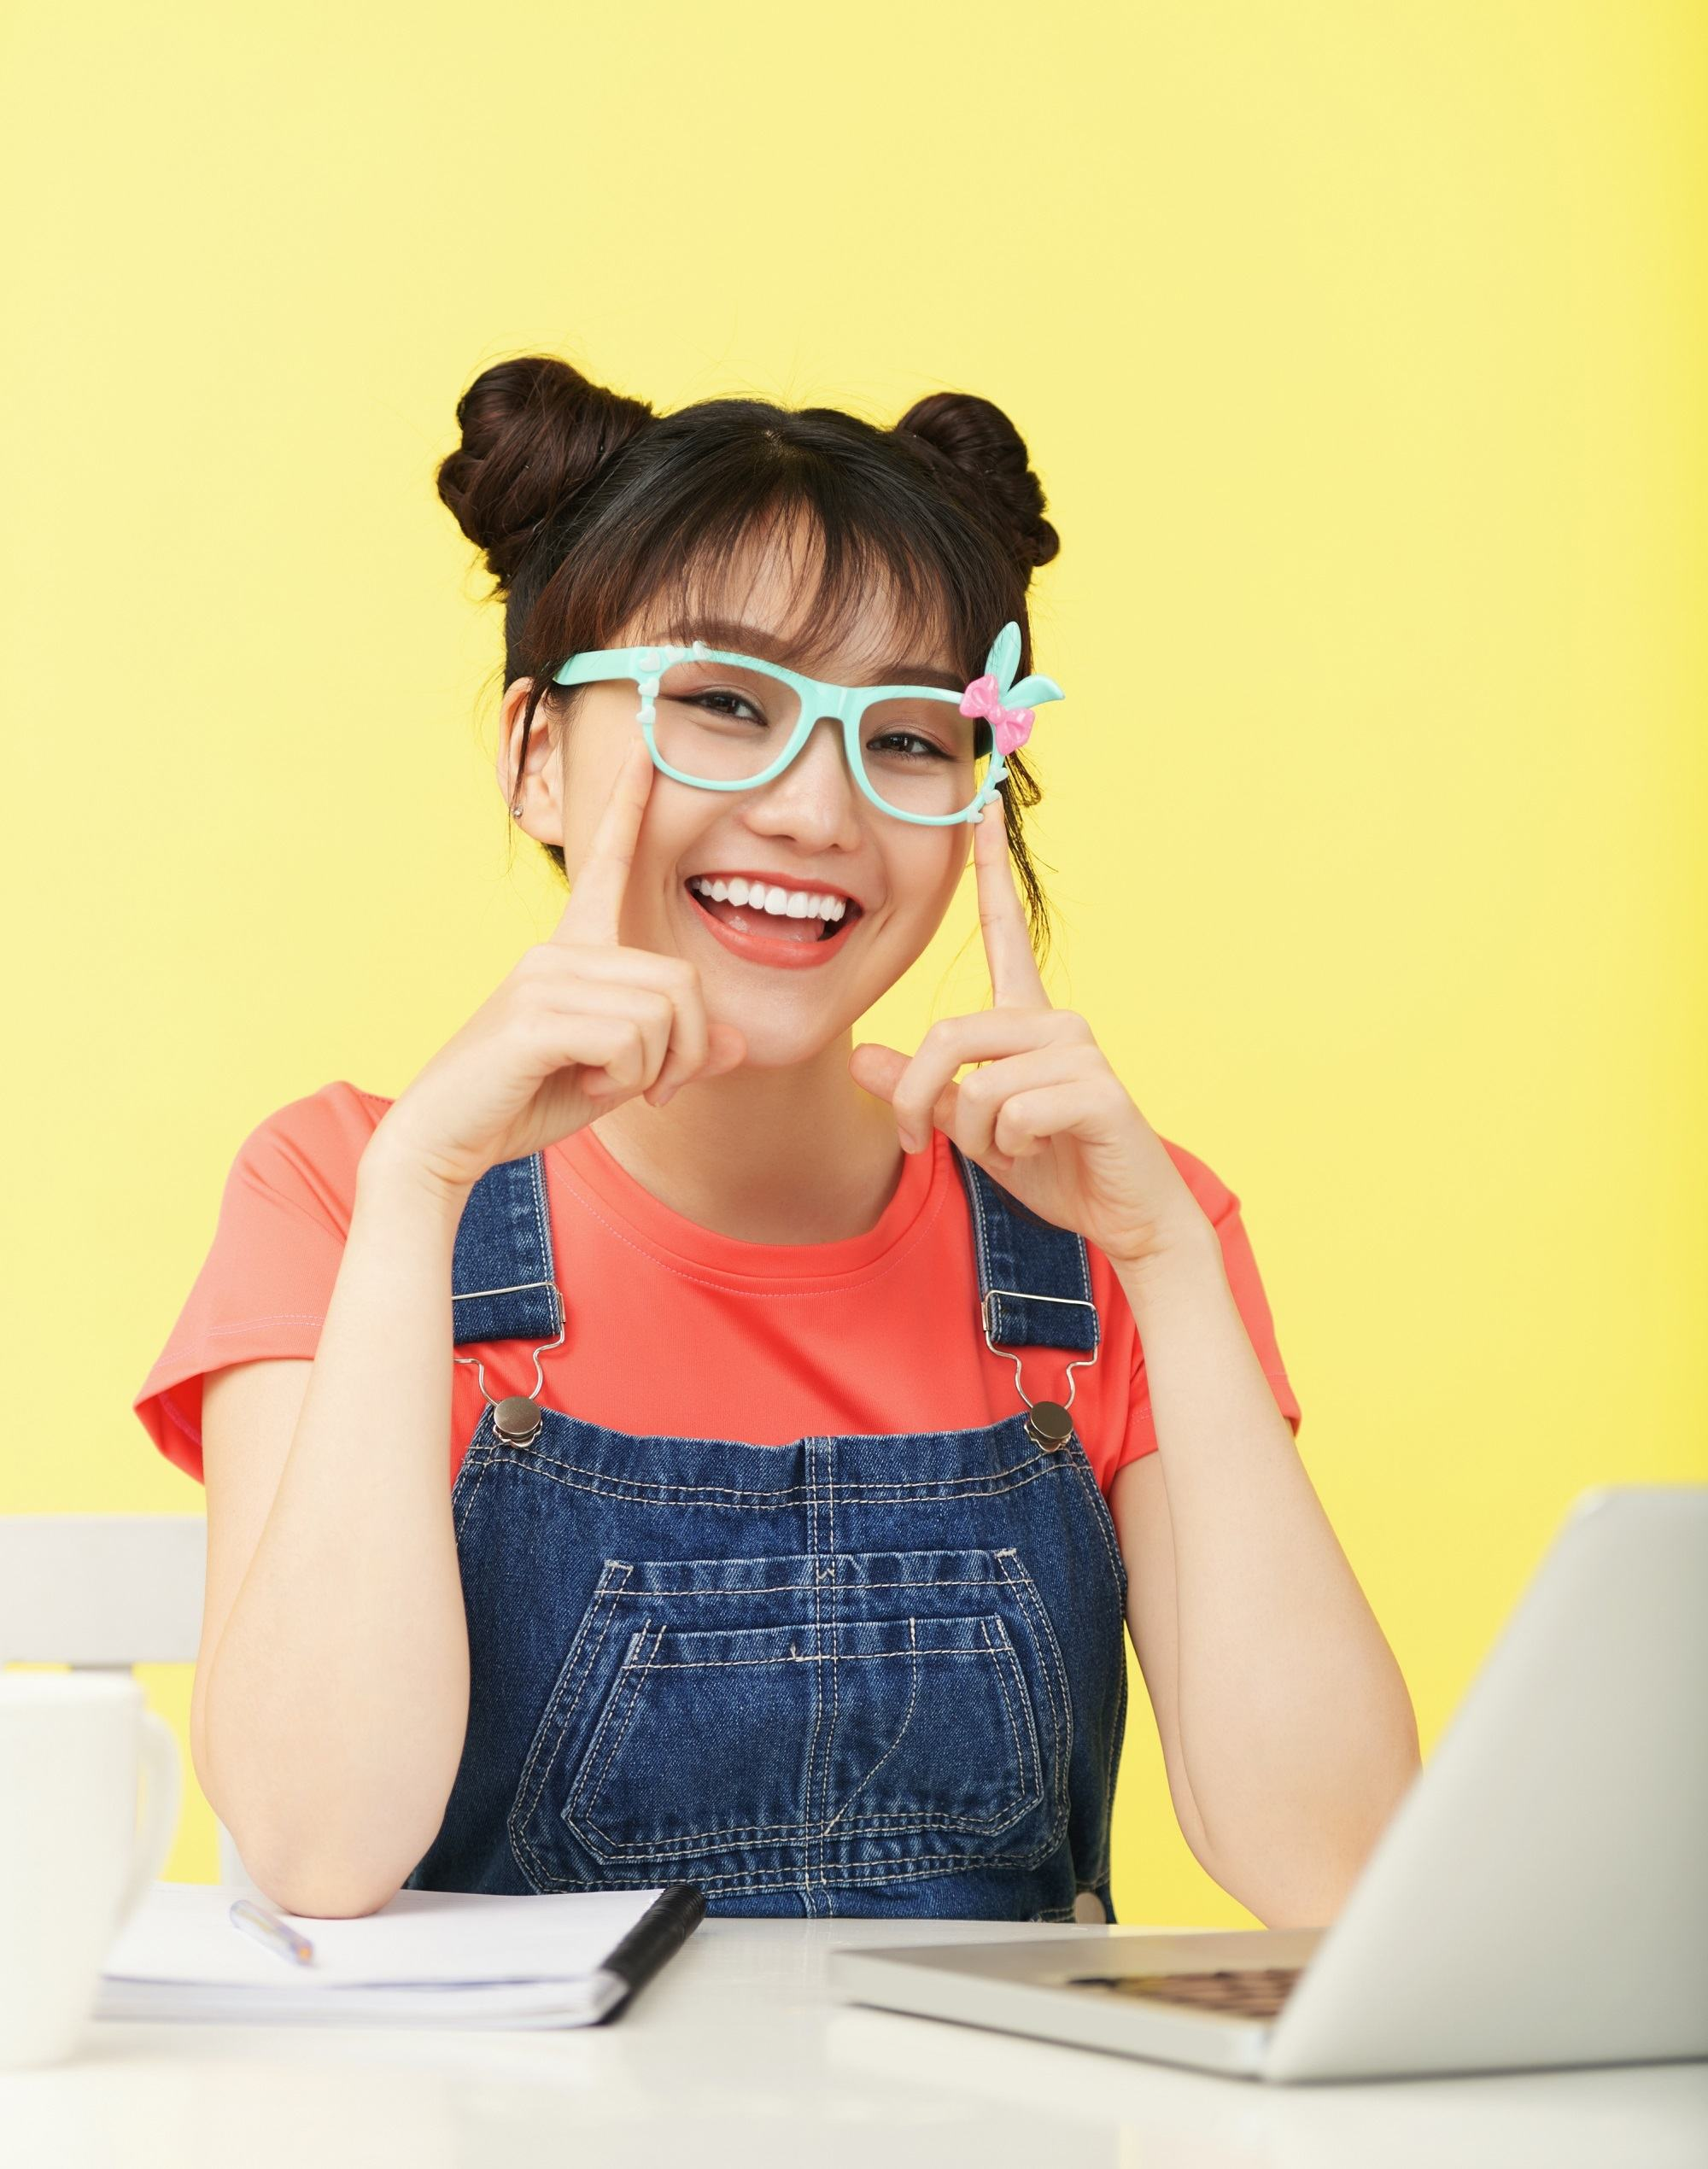 Girl with double buns and see-through bangs with glasses